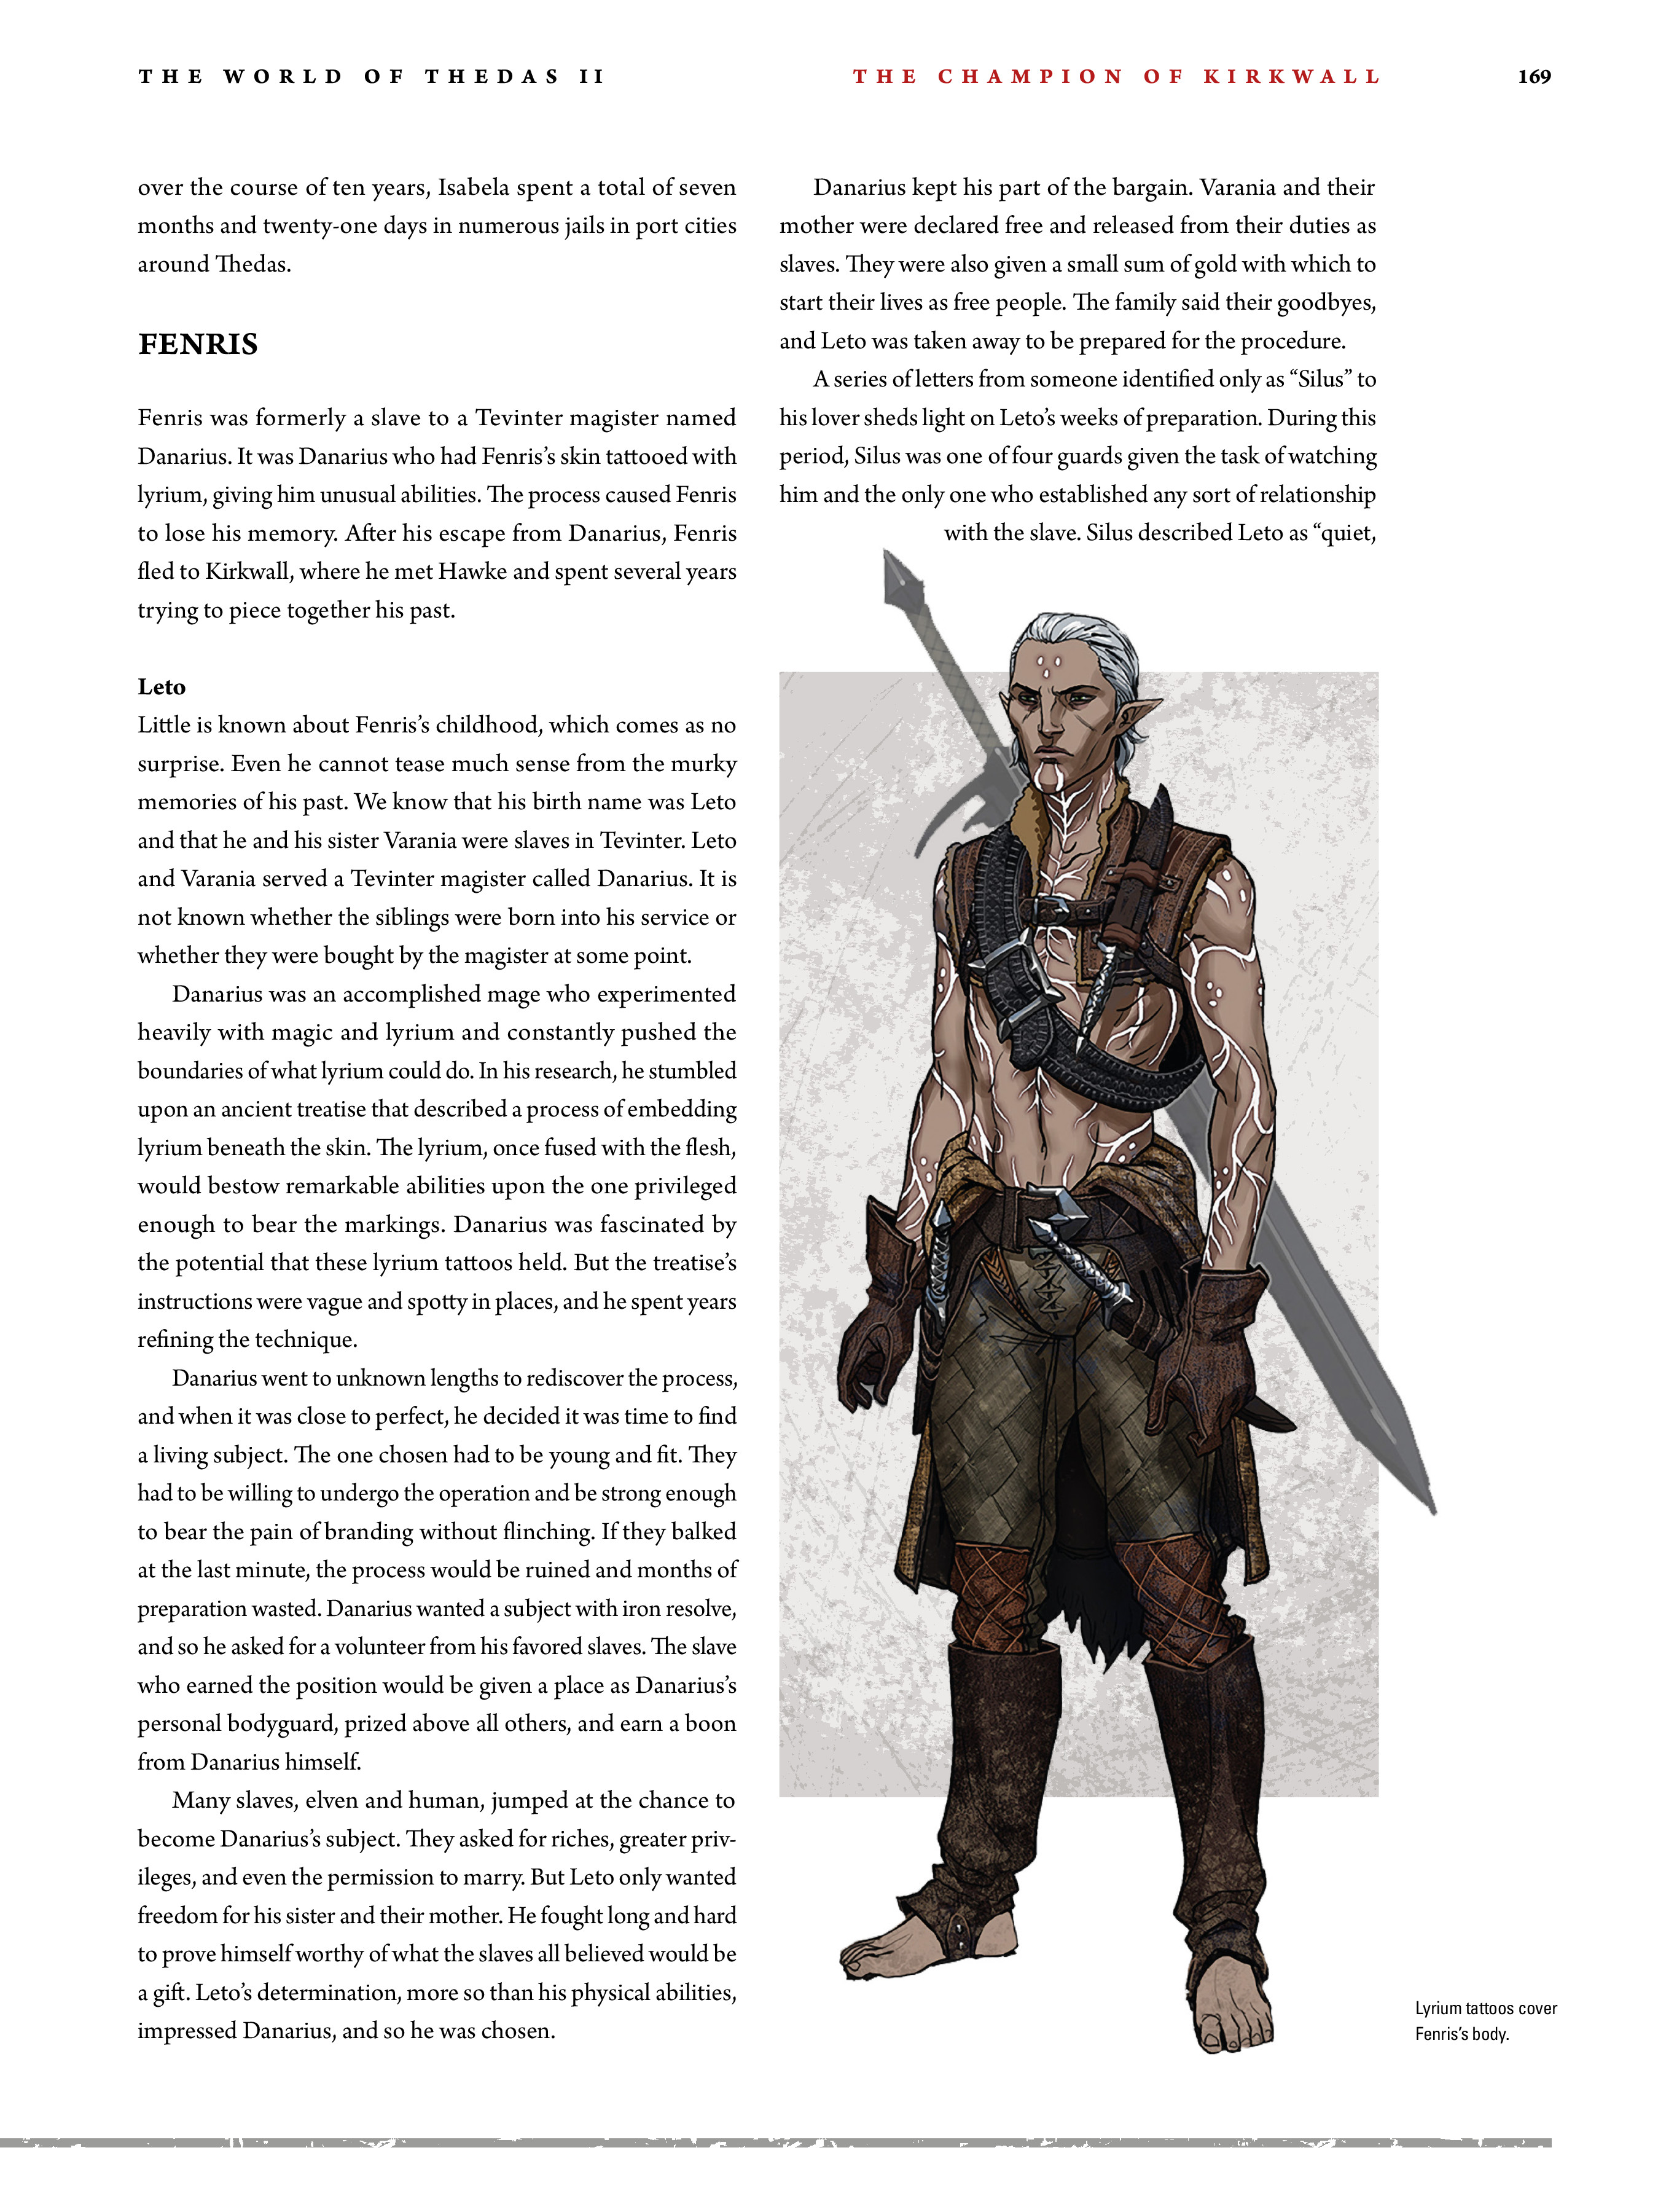 Read online Dragon Age: The World of Thedas comic -  Issue # TPB 2 - 164